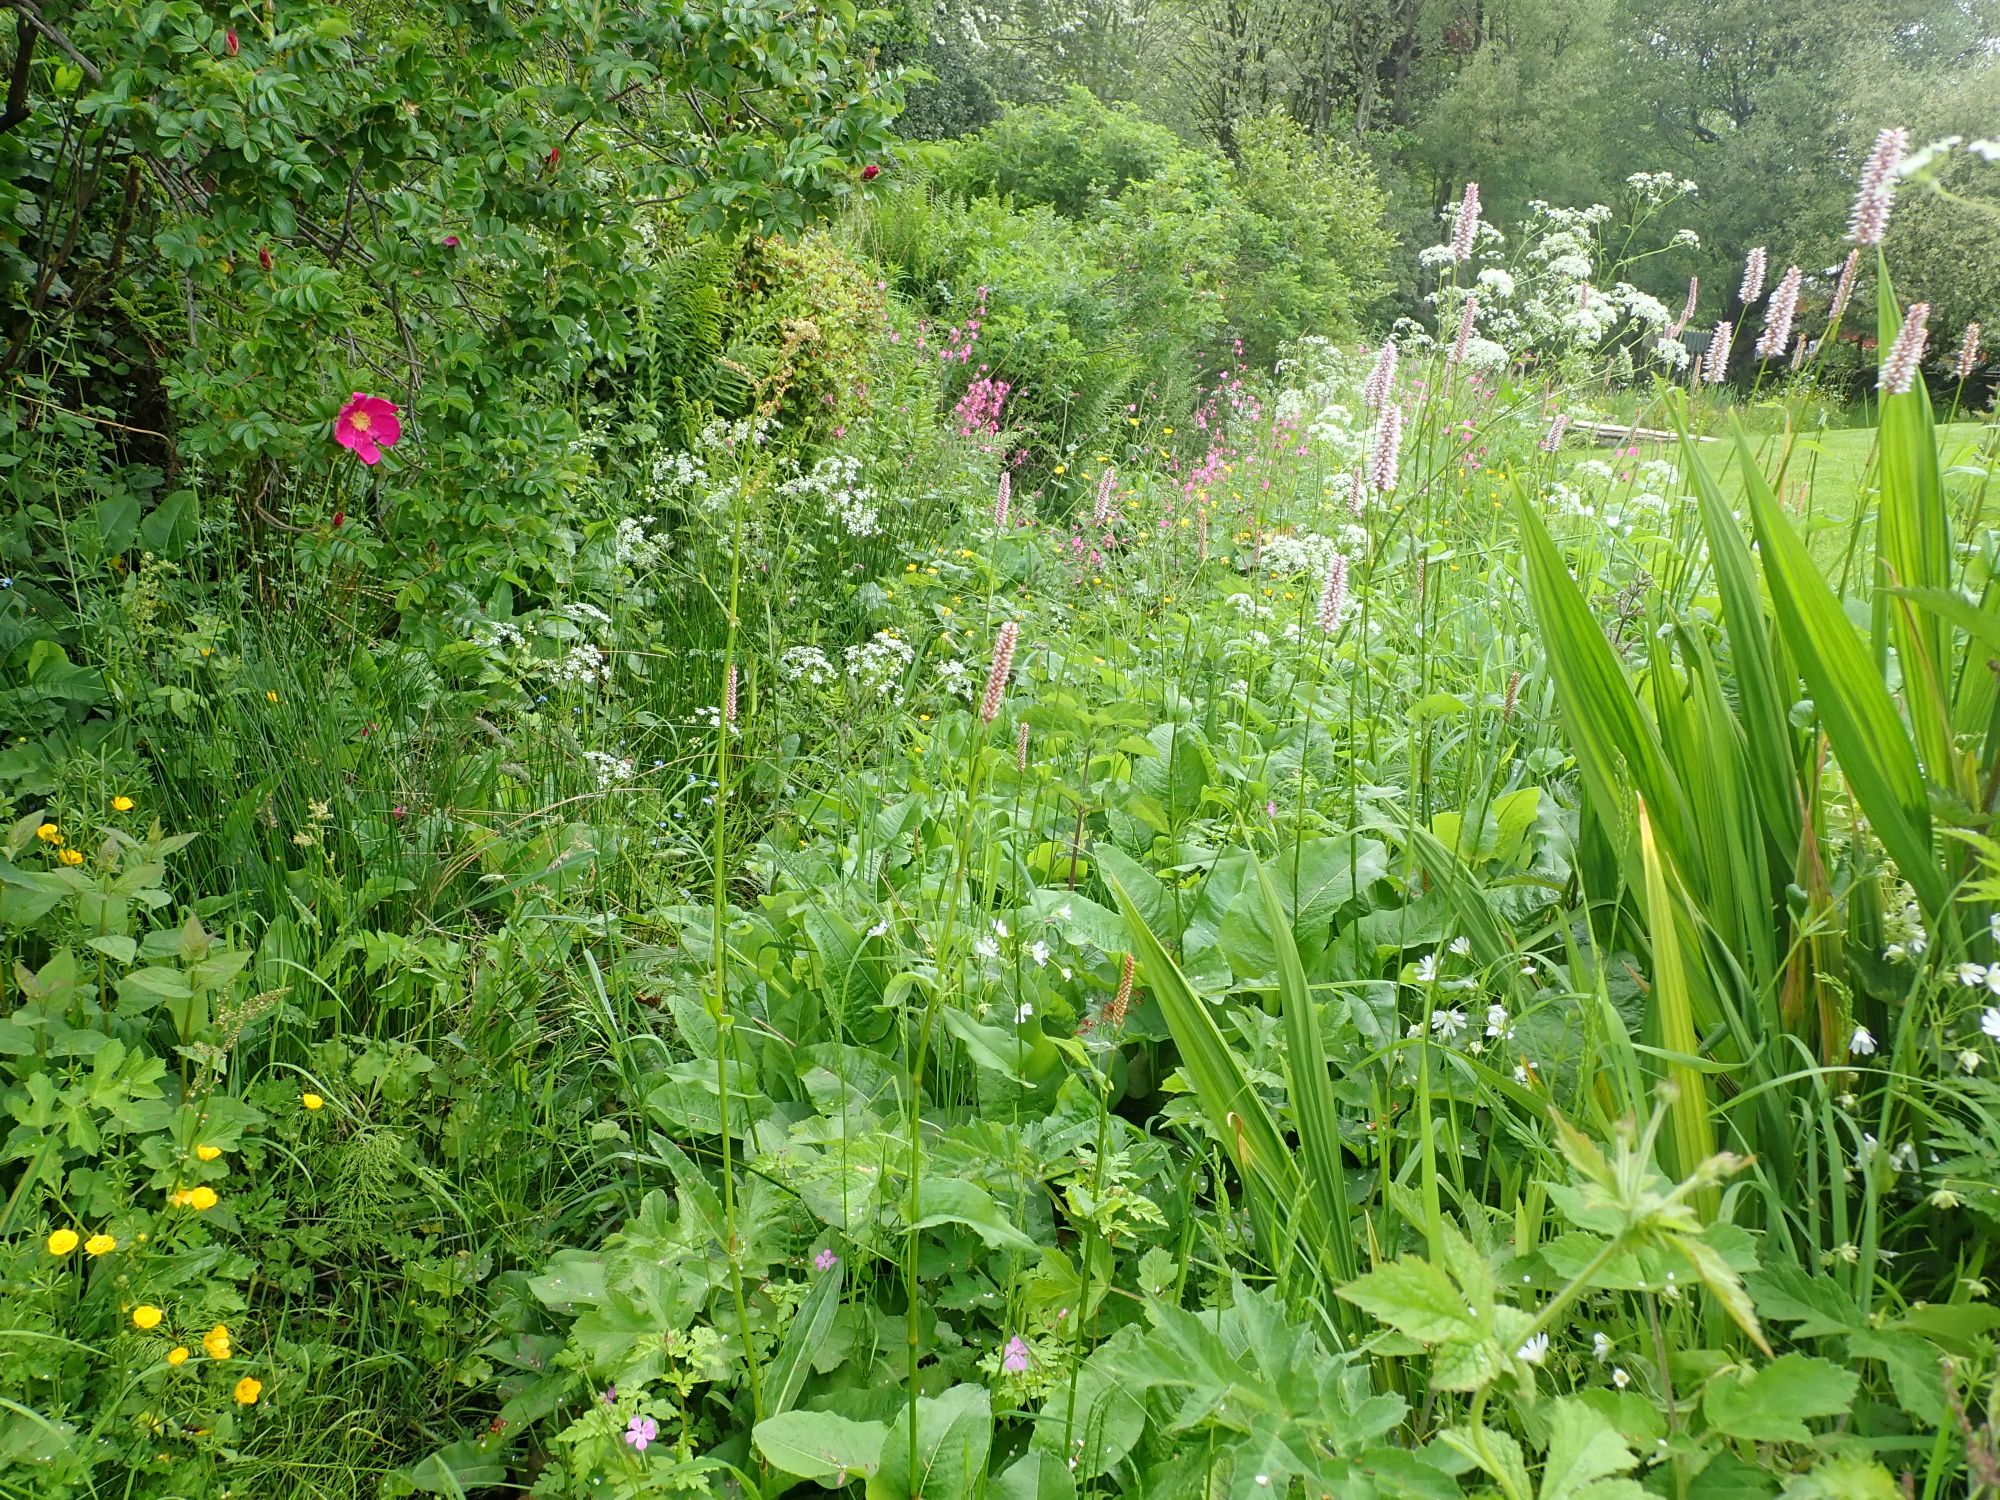 Wild area in the garden